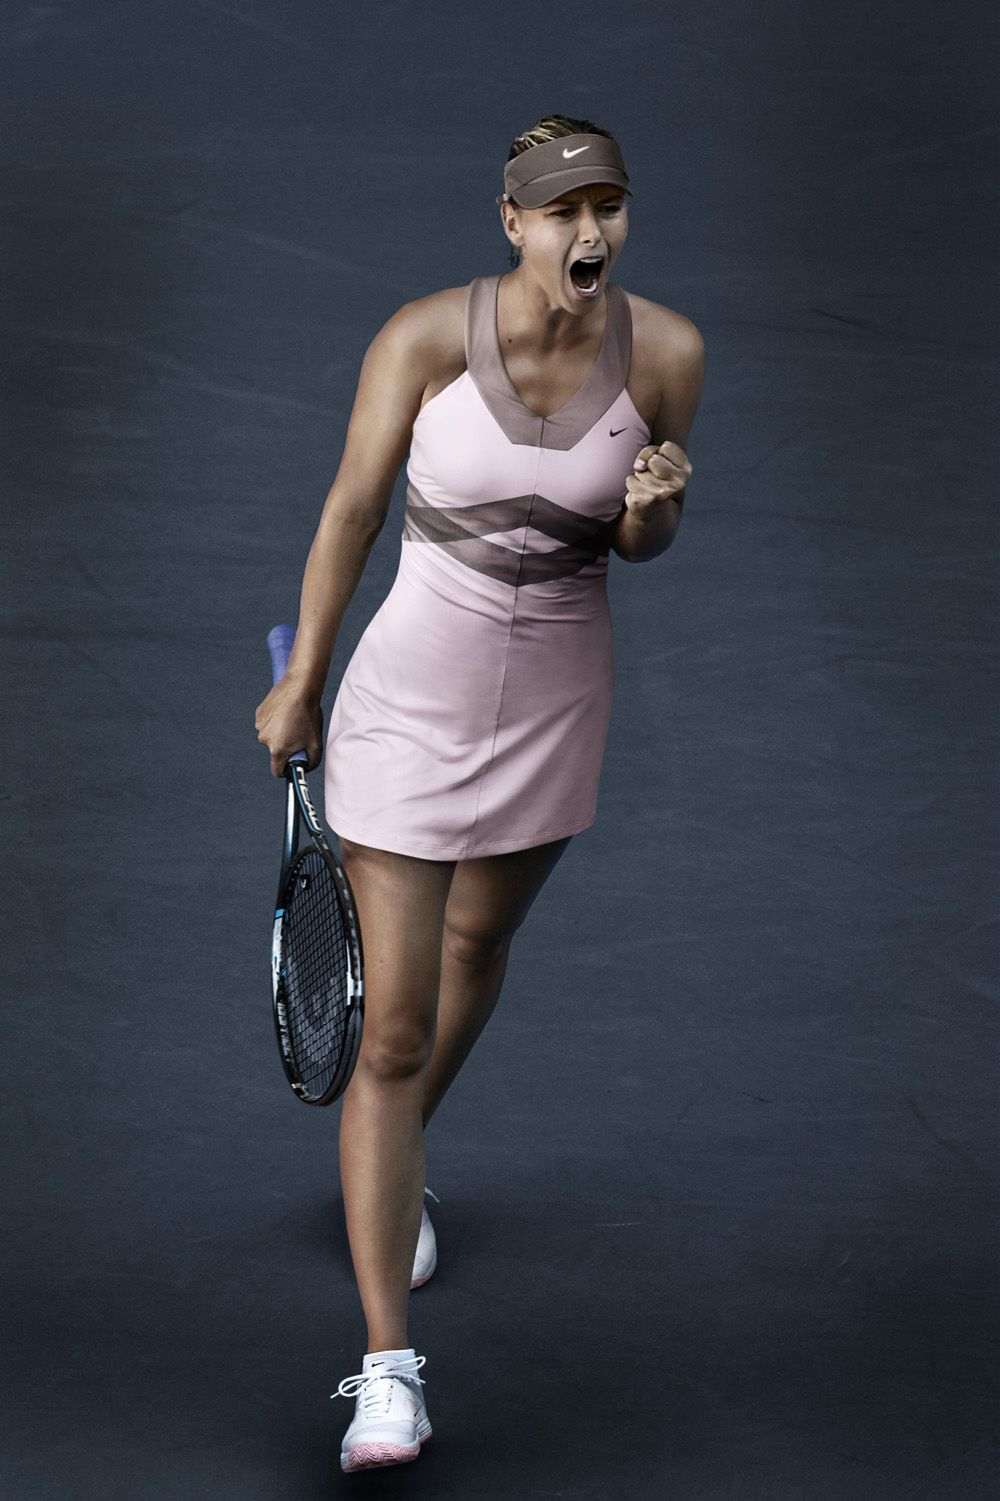 Nike Tennis 2012 US Open Collection Maria Sharapova - Nike sent us the outfit they wanted Maria ...